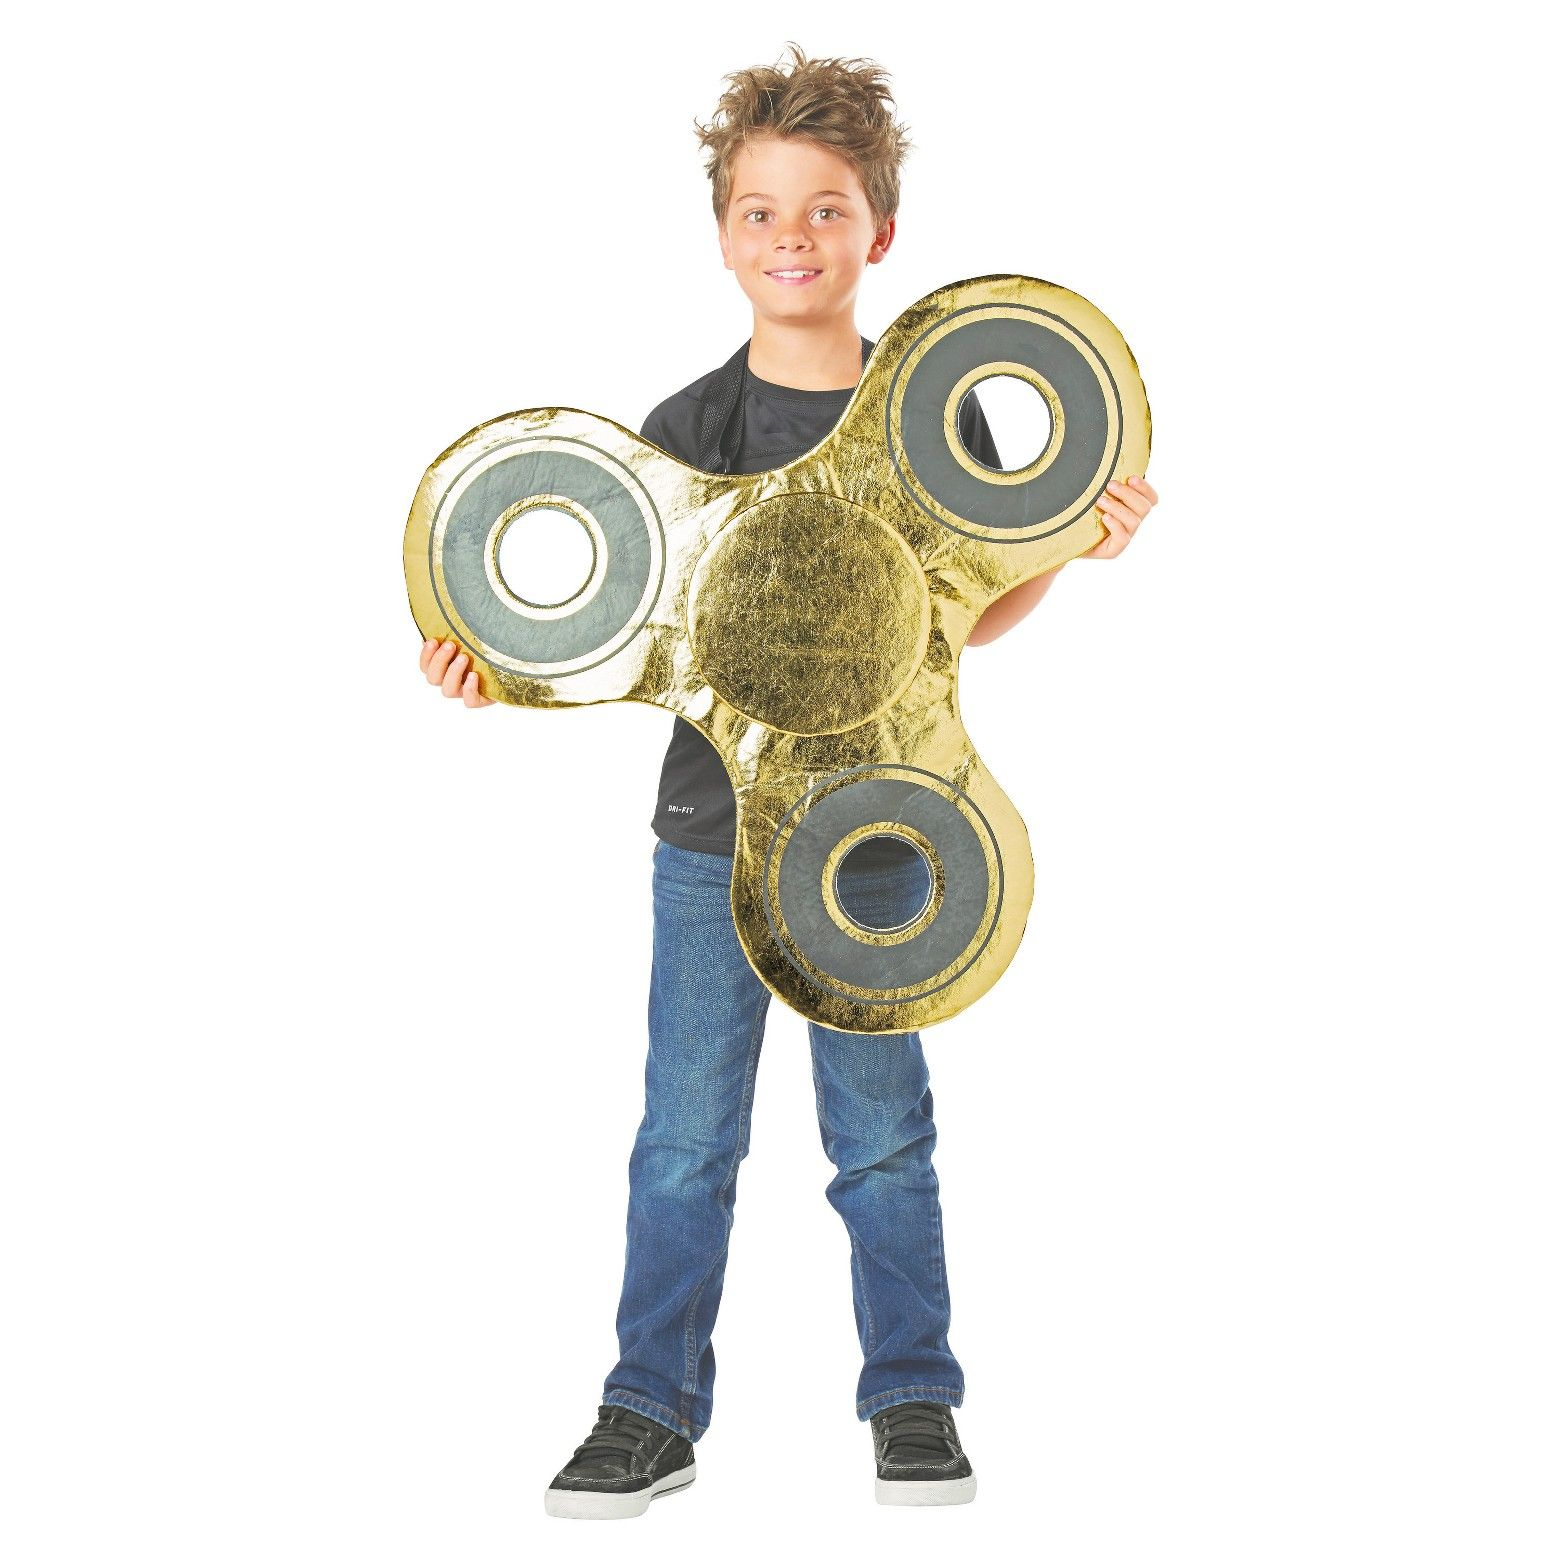 Even if you're over the fidget spinner craze, the Fidget